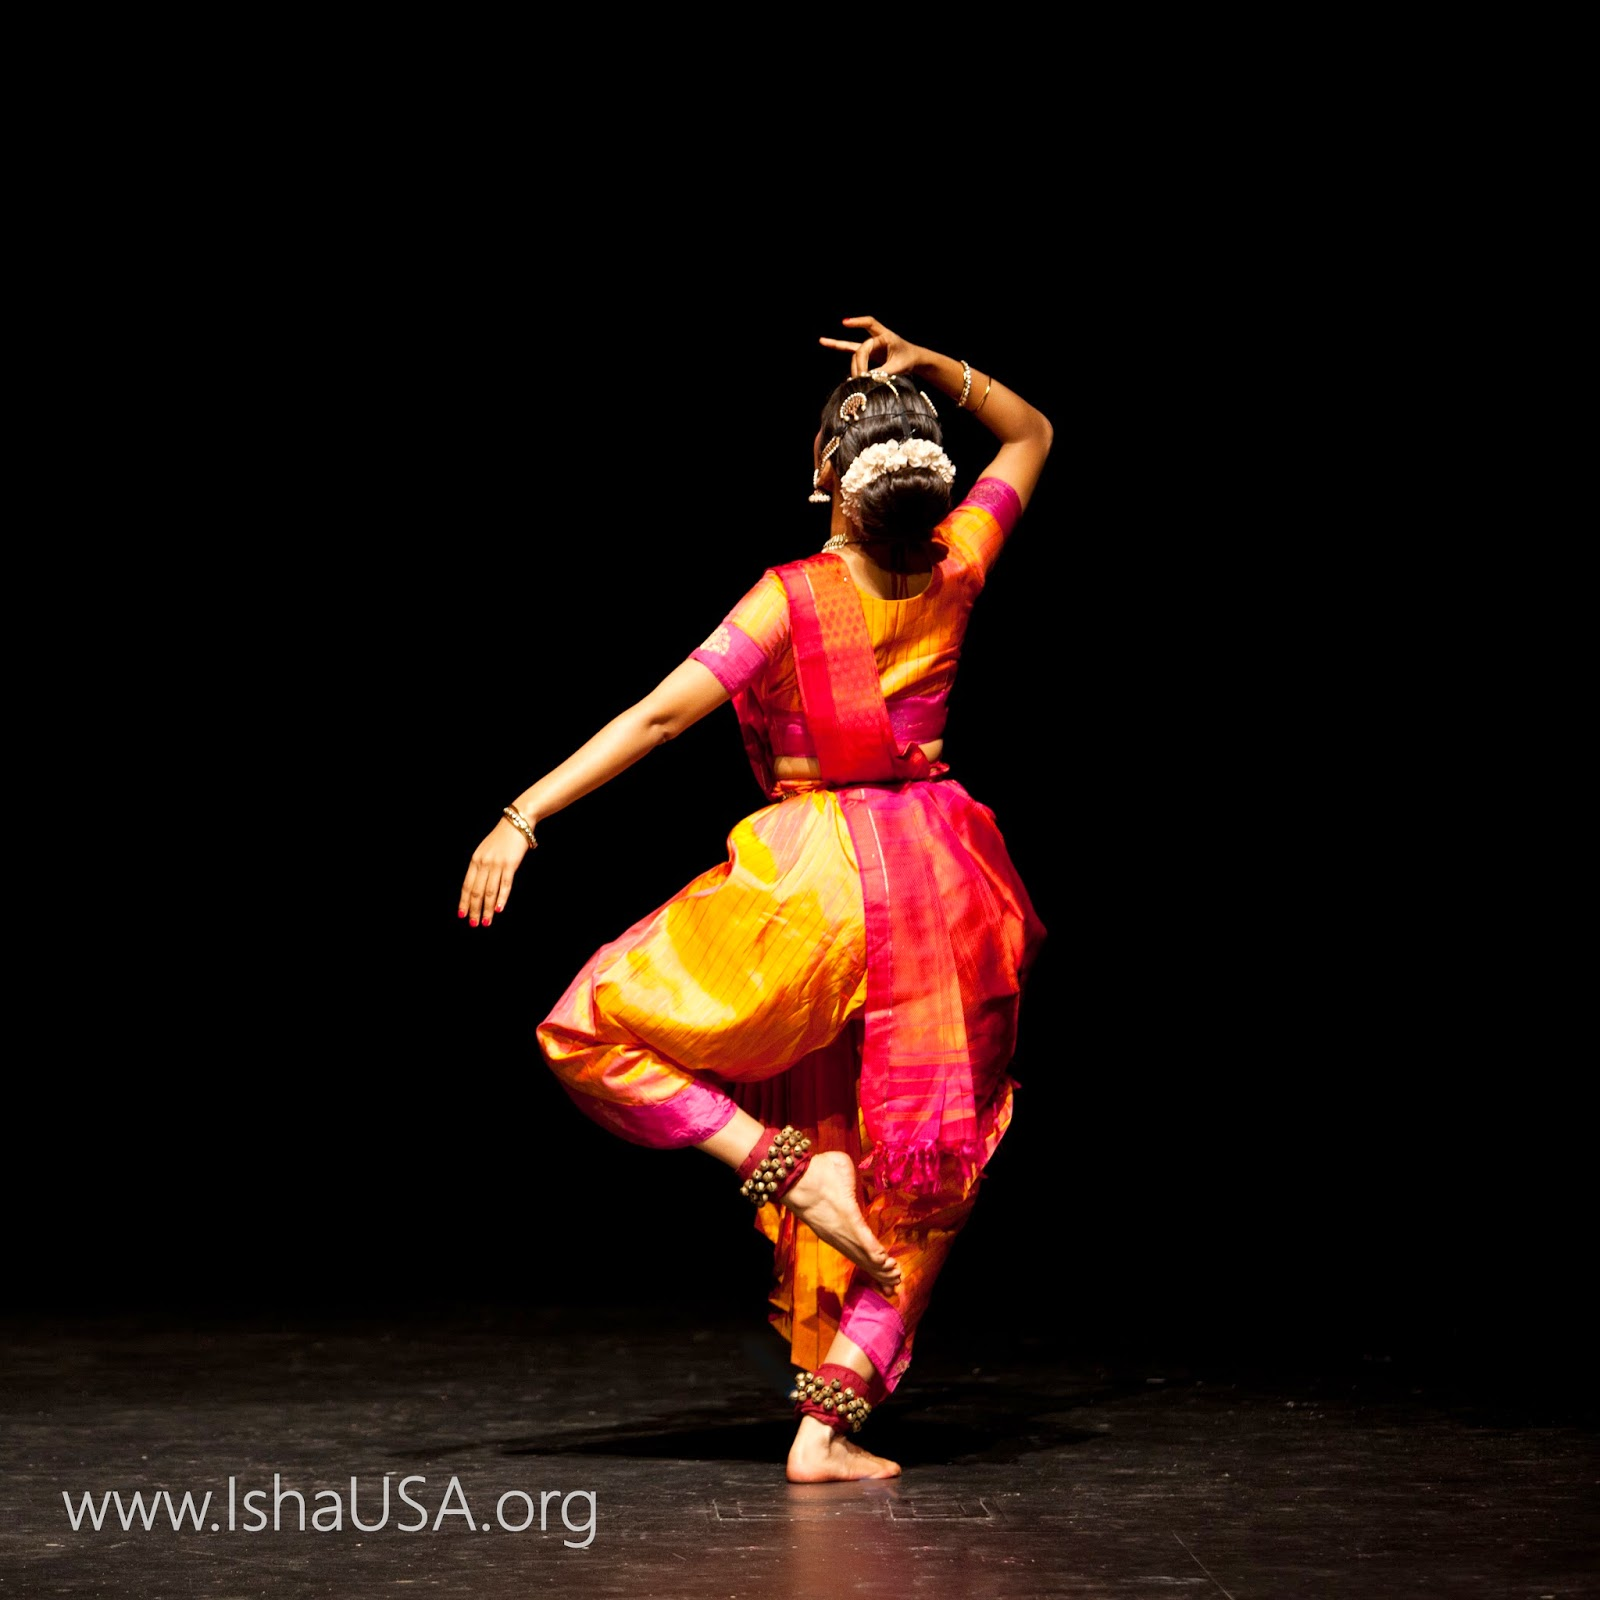 Radhe Jaggi, an emerging Bharatnatyam soloist from India. Radhe has been invited to perform at leading sabhas and events in India and abroad, including the Fitzwilliam College, Cambridge University,